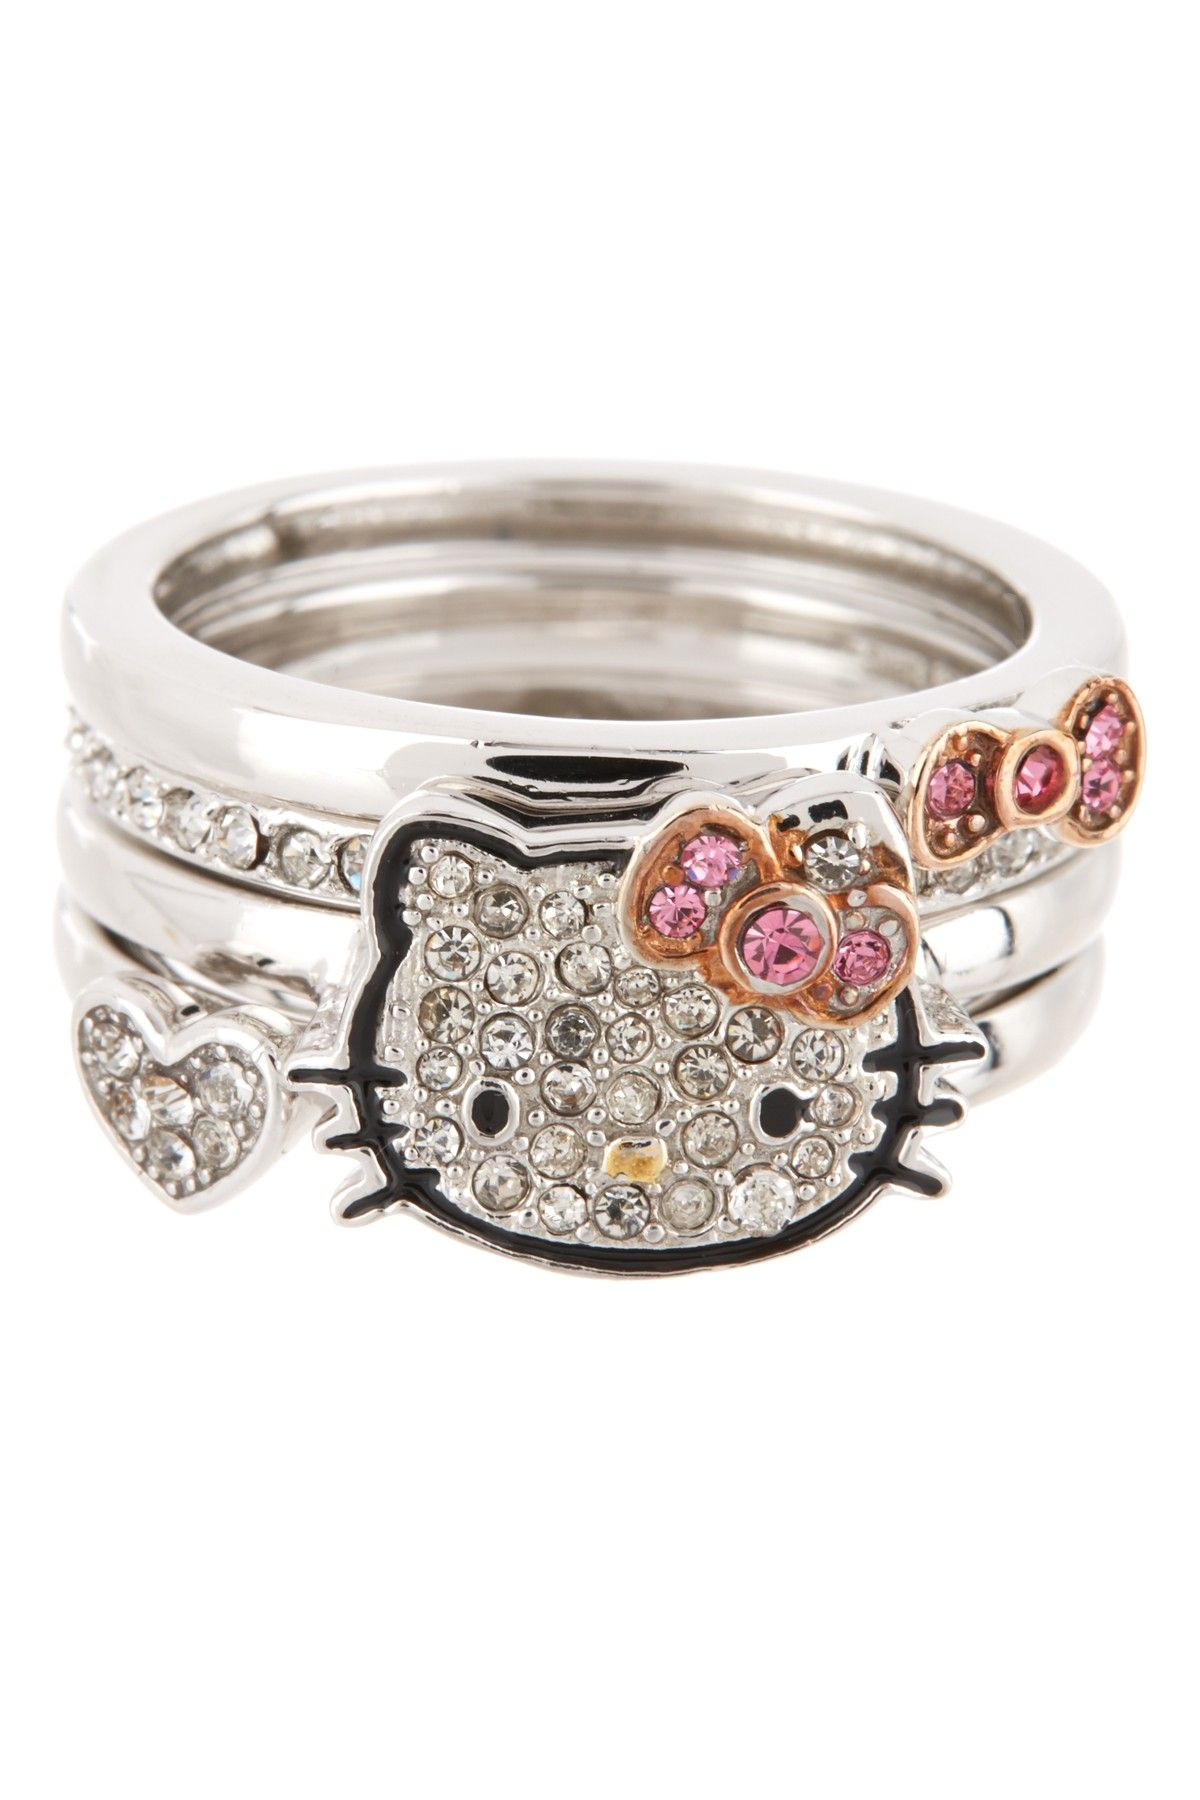 Crystal Pave Hello Kitty Ring Stack Set Awfully reminiscent of the